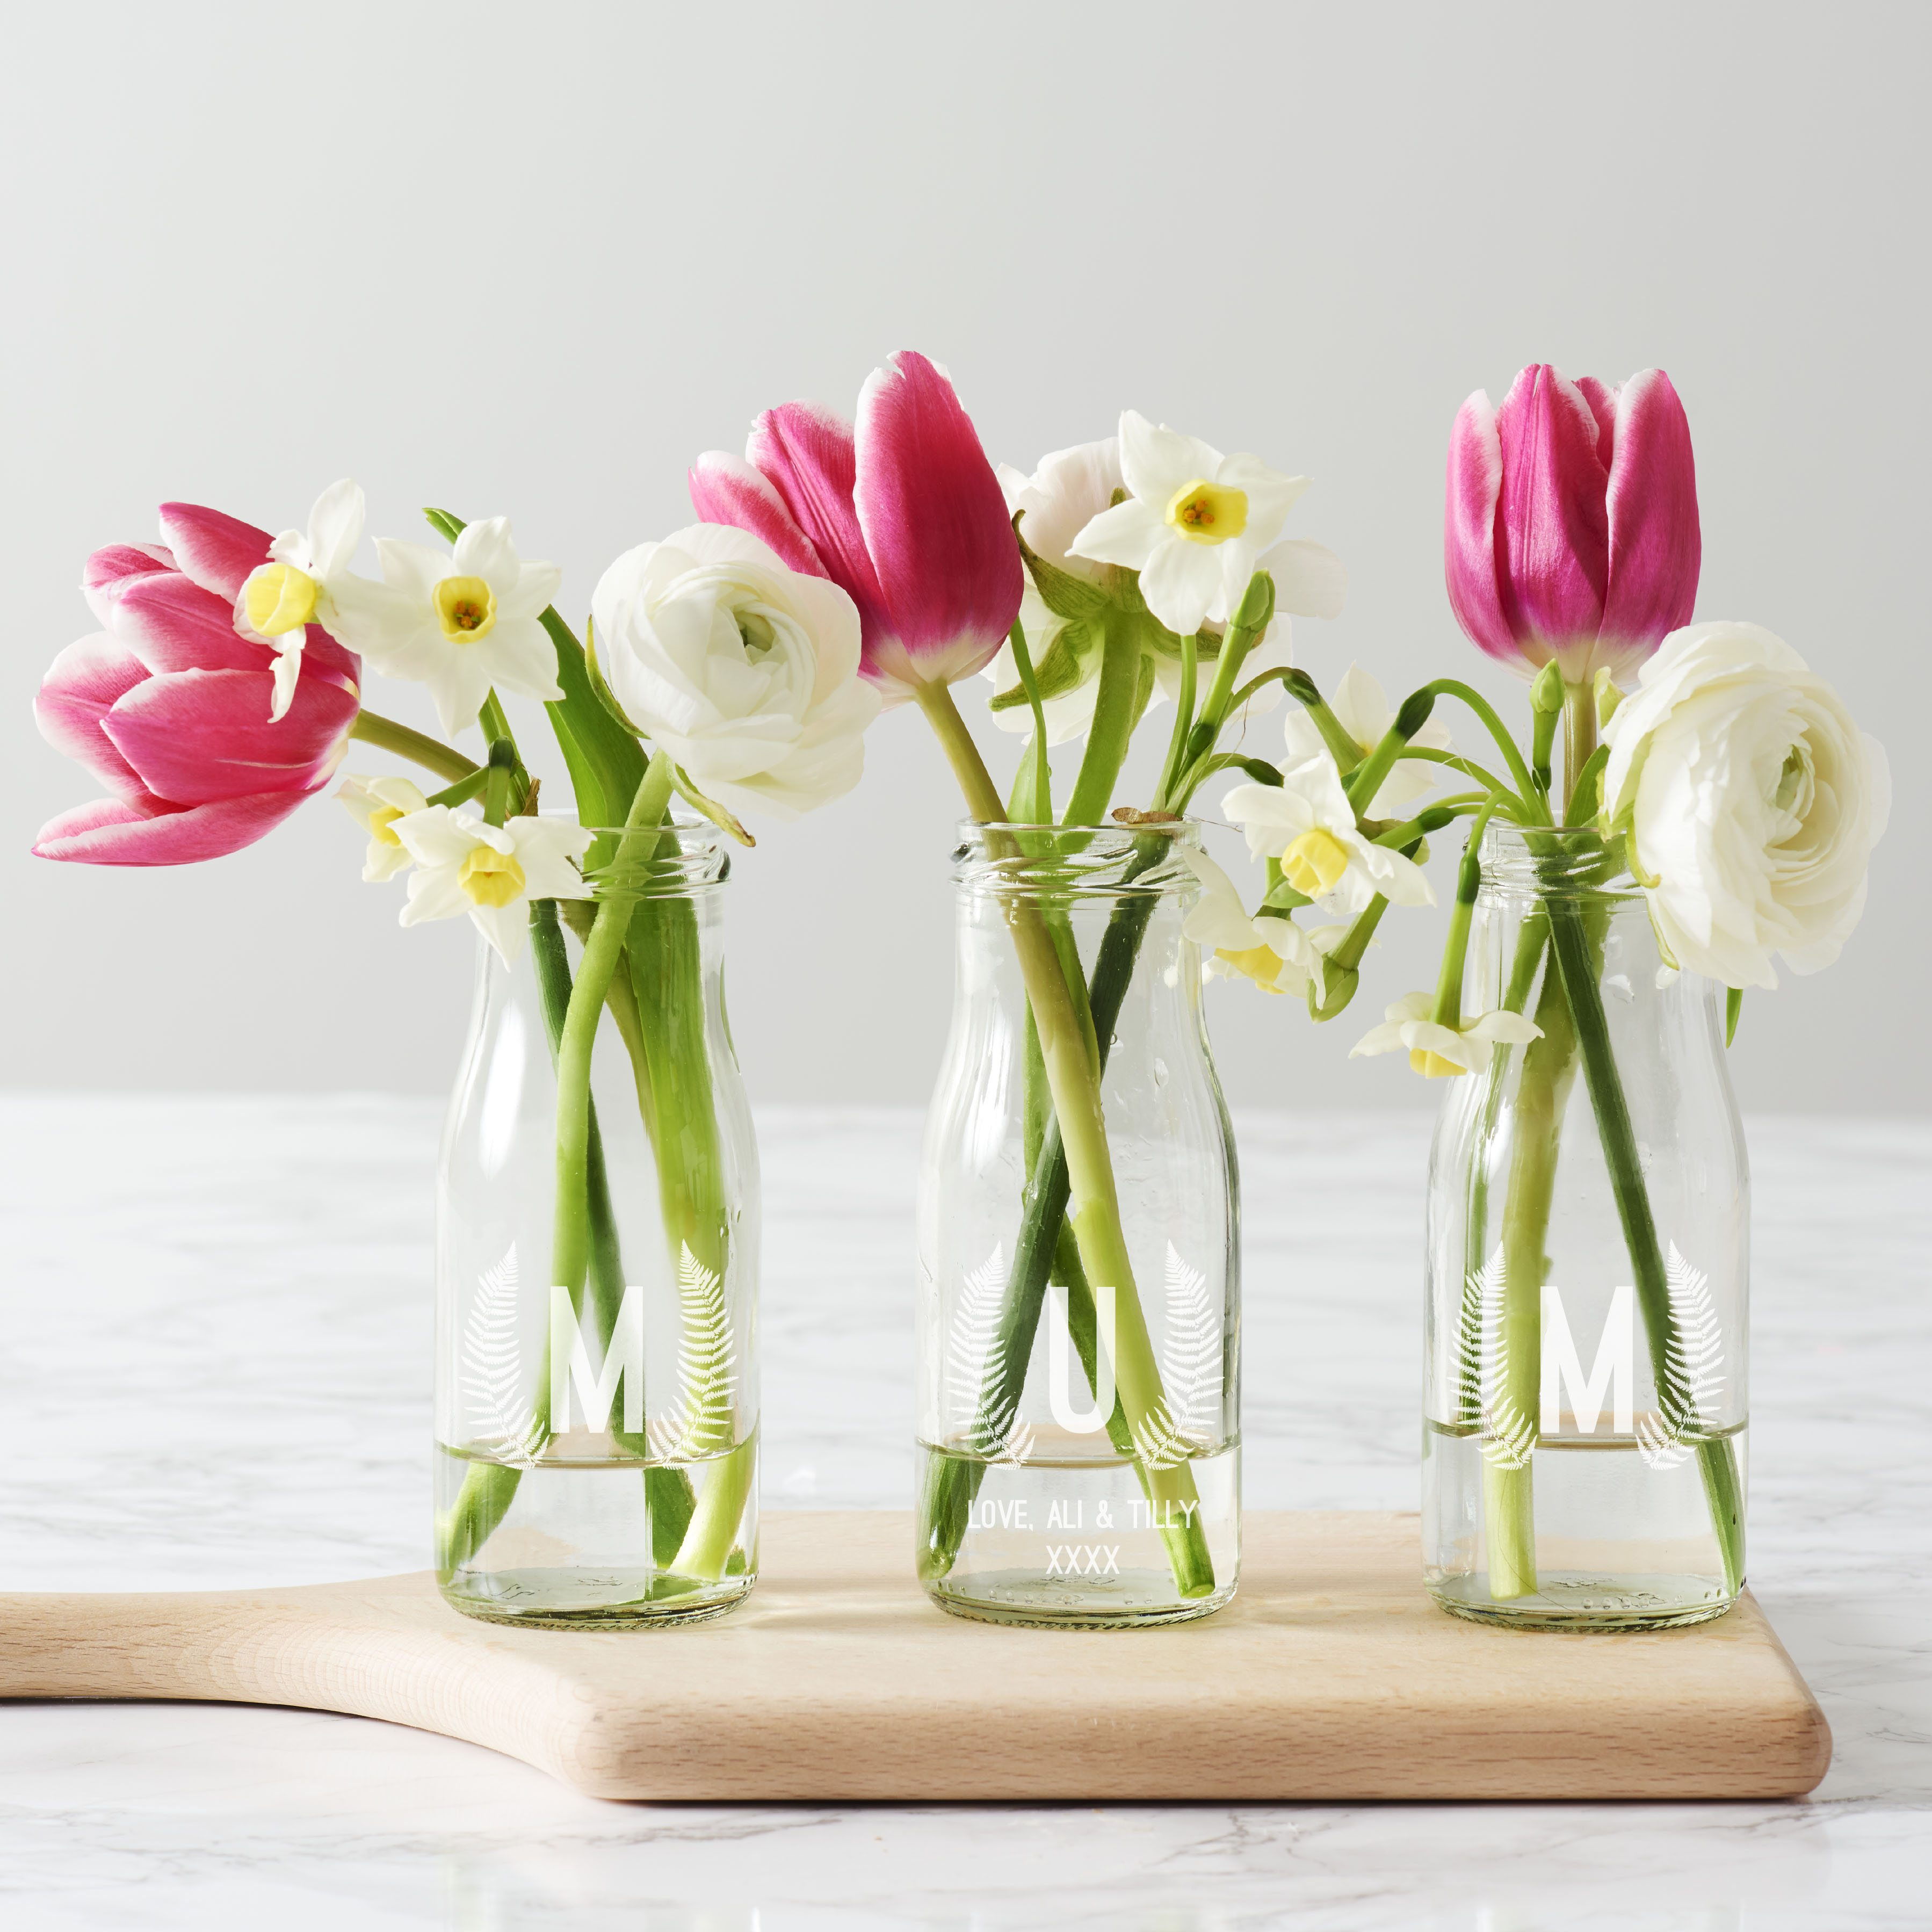 Personalised 'Mum' Botanical Bottle Bud Vases